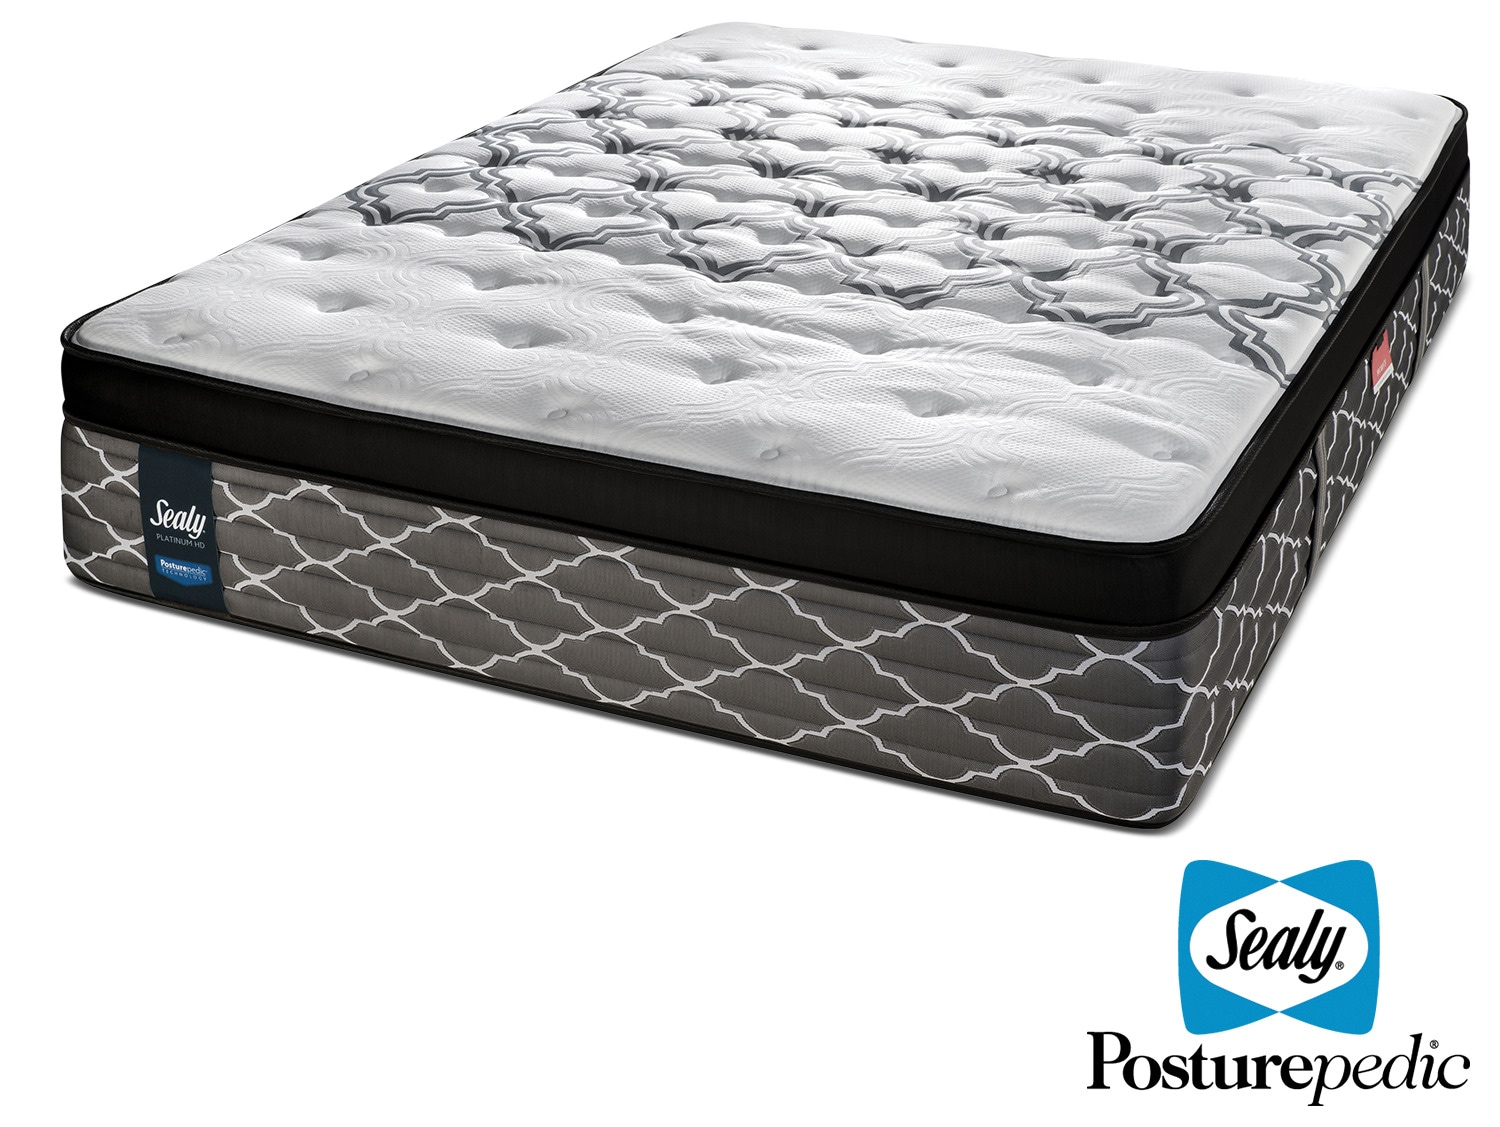 Sealy Dreamy Night Hybrid Firm King Mattress